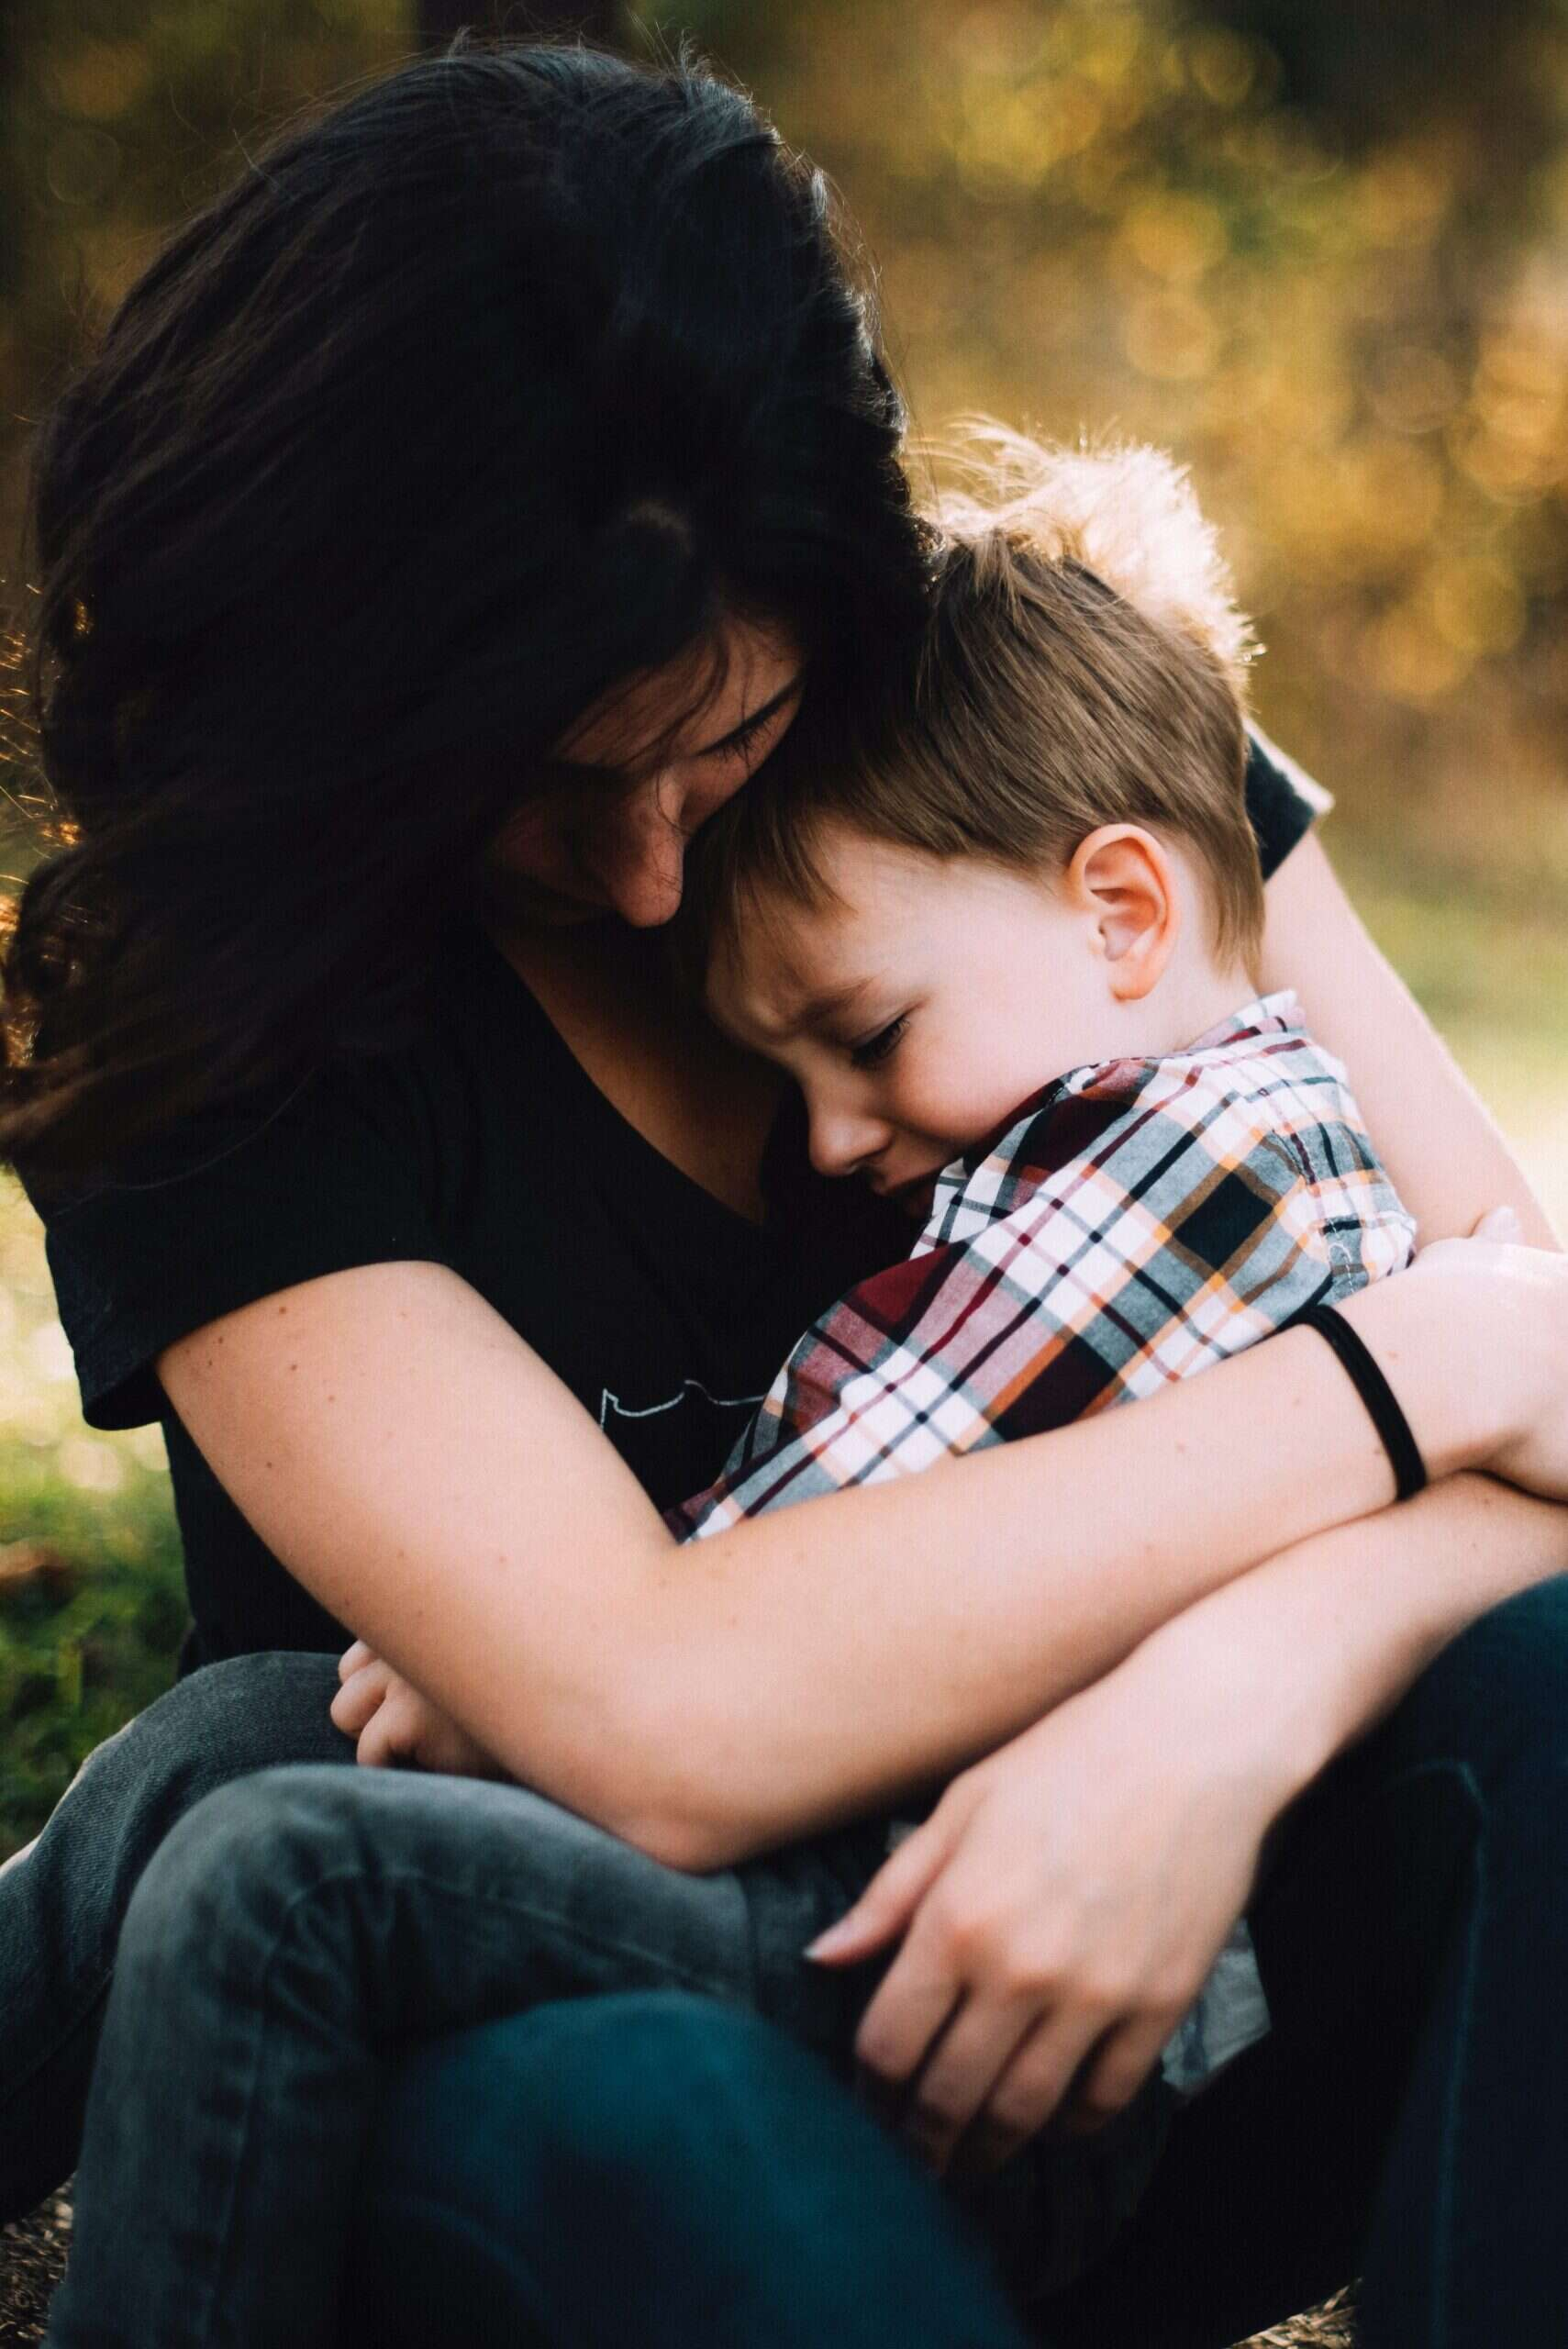 How can I help my child with juvenile arthritis